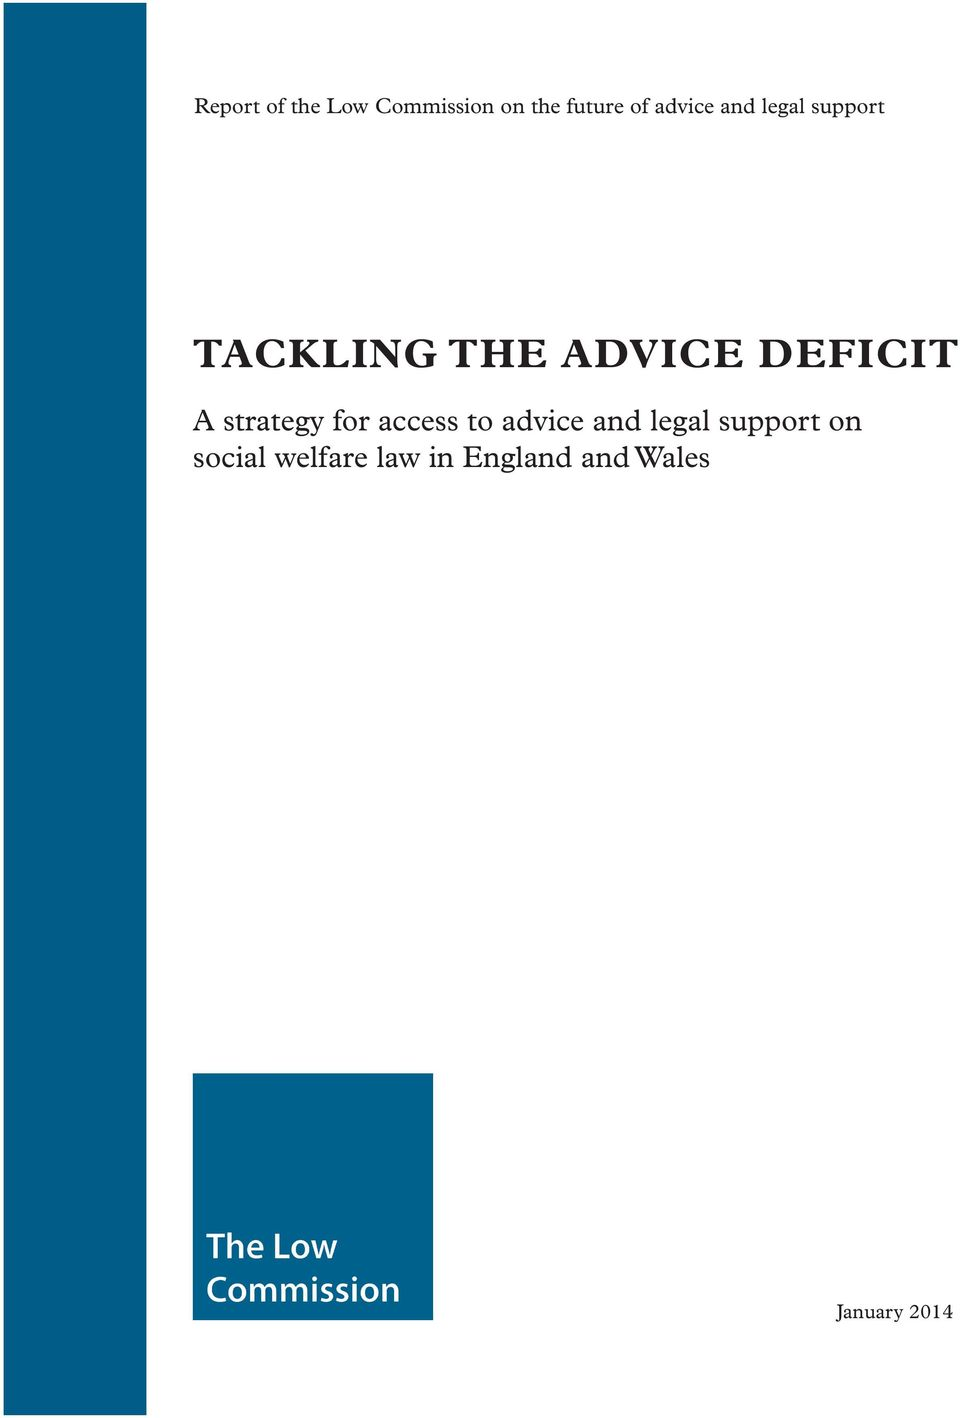 DEFICIT A strategy for access to advice and legal